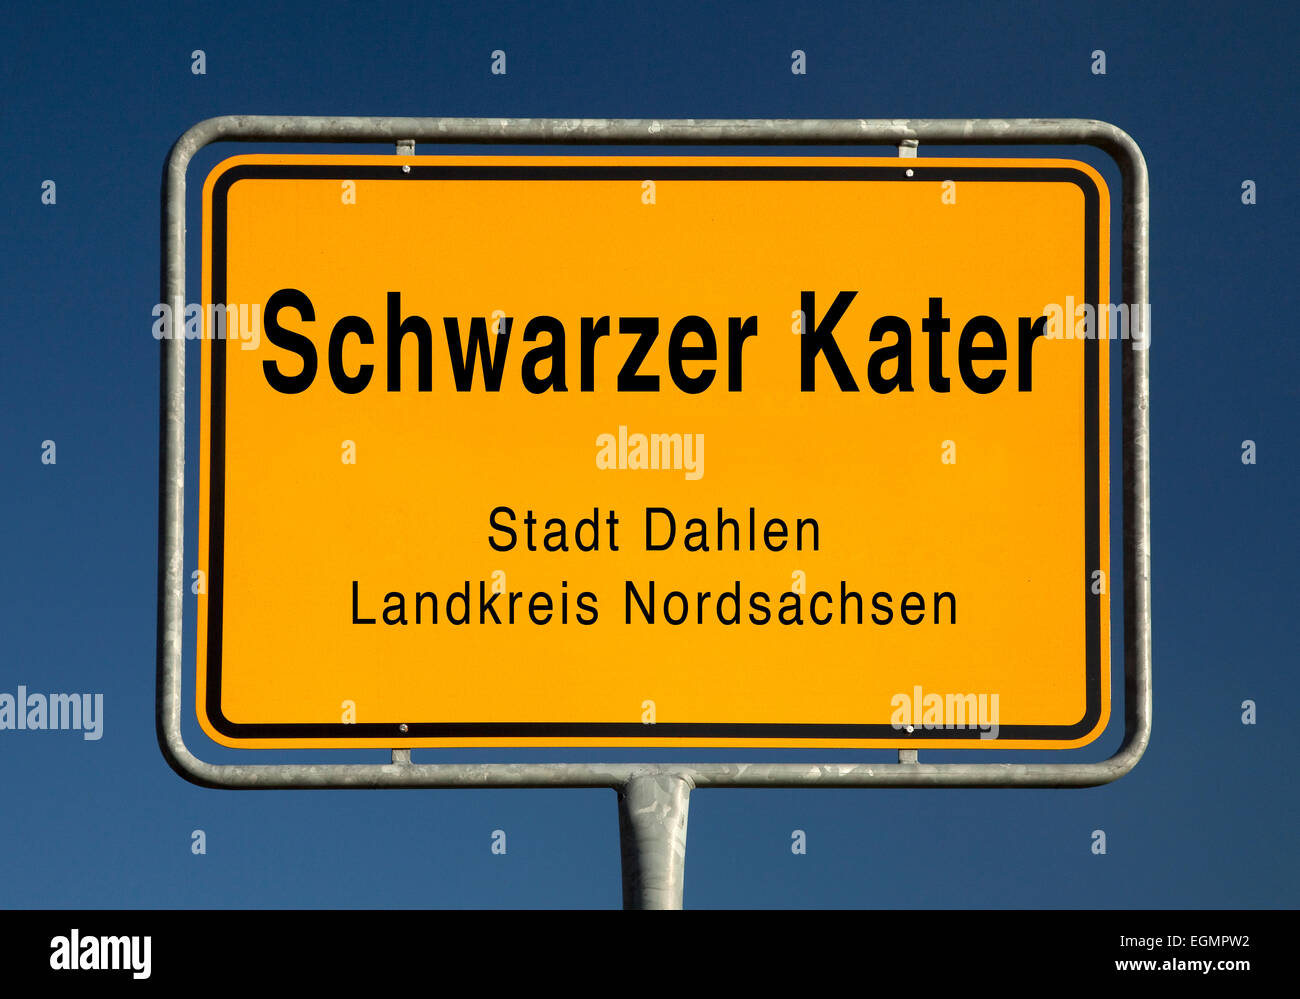 City limits sign of Schwarzer Kater, a district of the city Dahlen, Nordsachsen, Germany Stock Photo